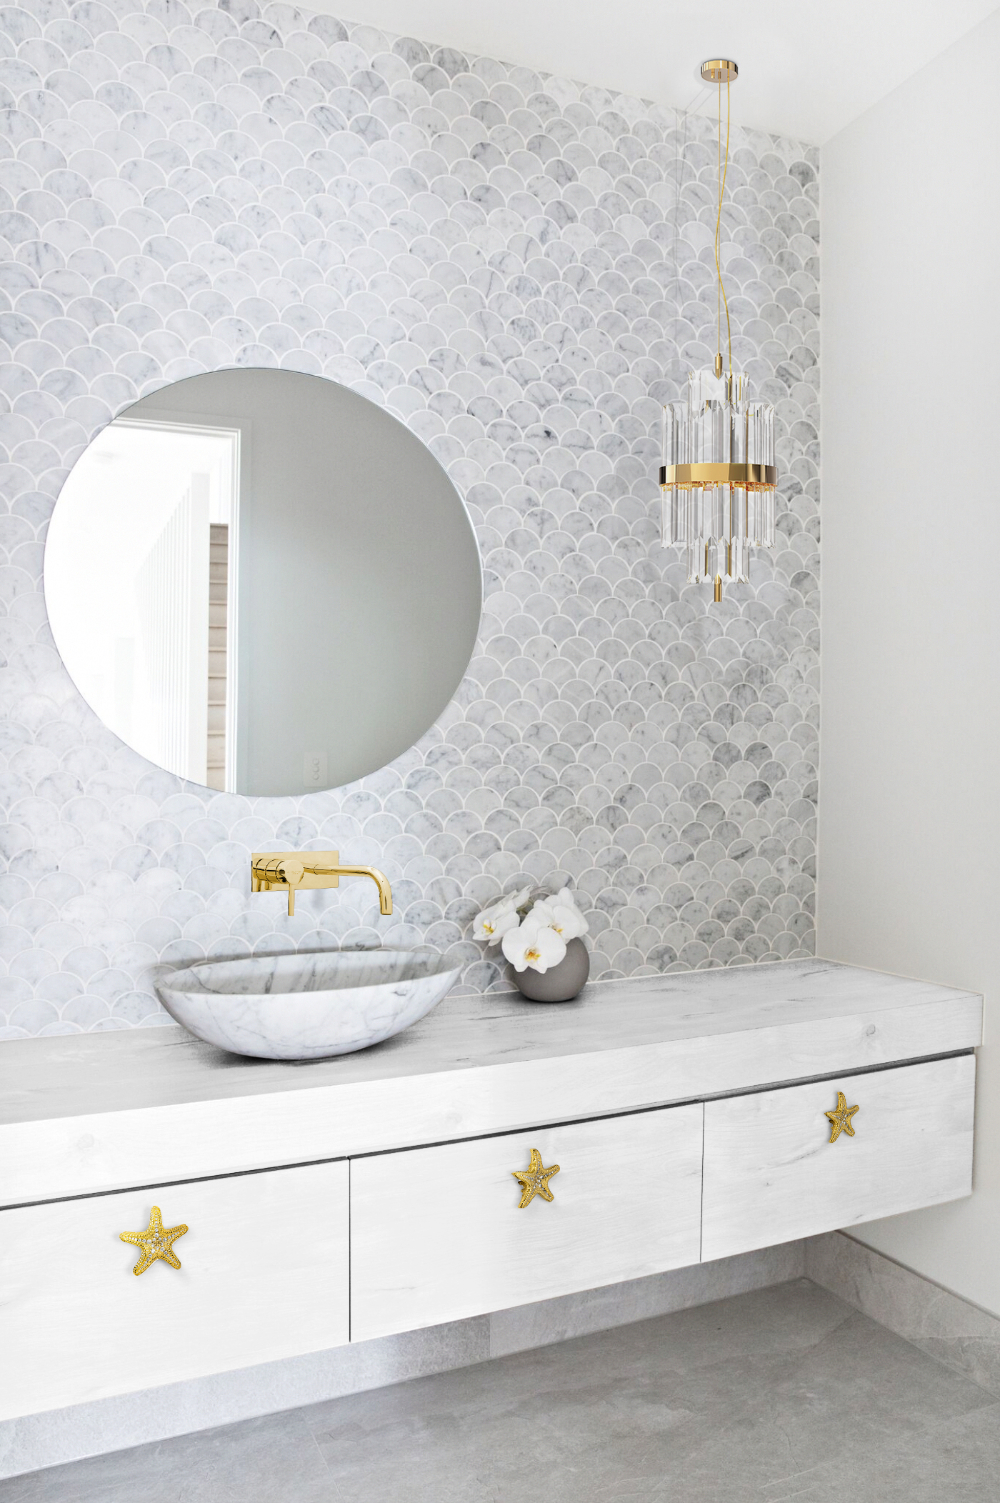 Bathroom Decor Trends 2021 To Watch Out For (1) bathroom decor trends Bathroom Decor Trends 2021 To Watch Out For Bathroom Decor Trends 2021 To Watch Out For 1